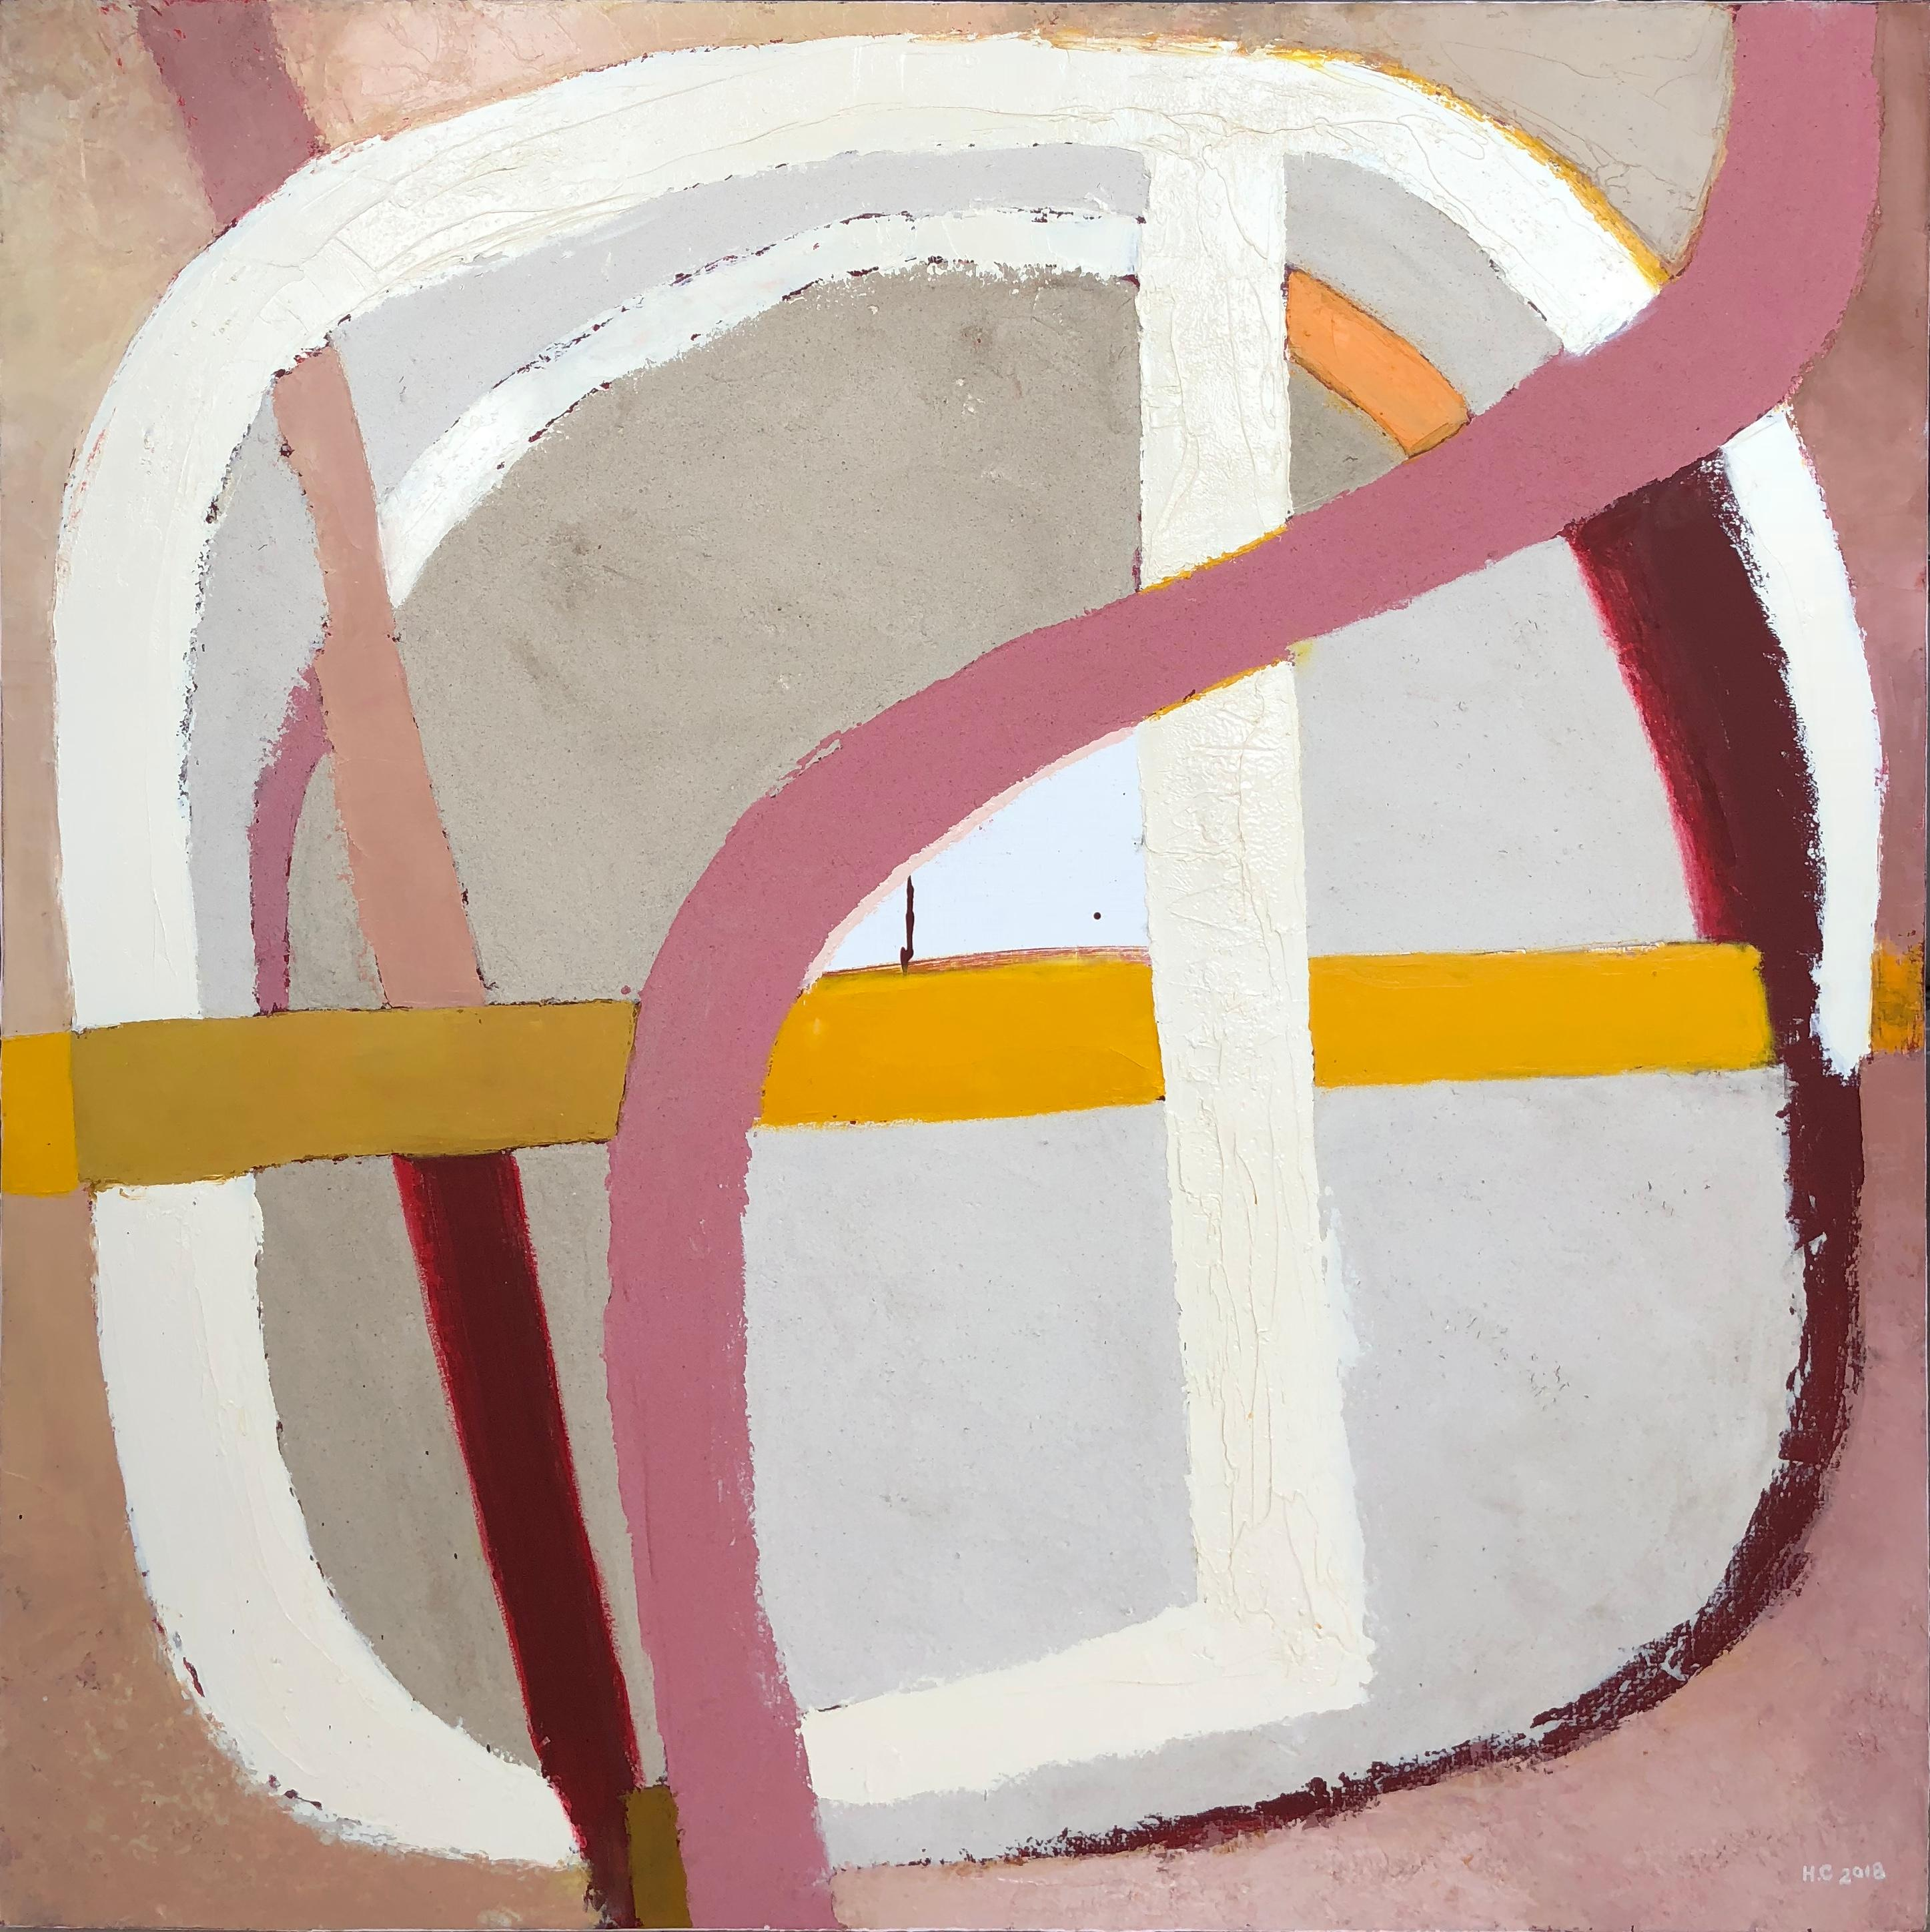 Topography 6 - abstract painting in light pink, white, yellow and grey